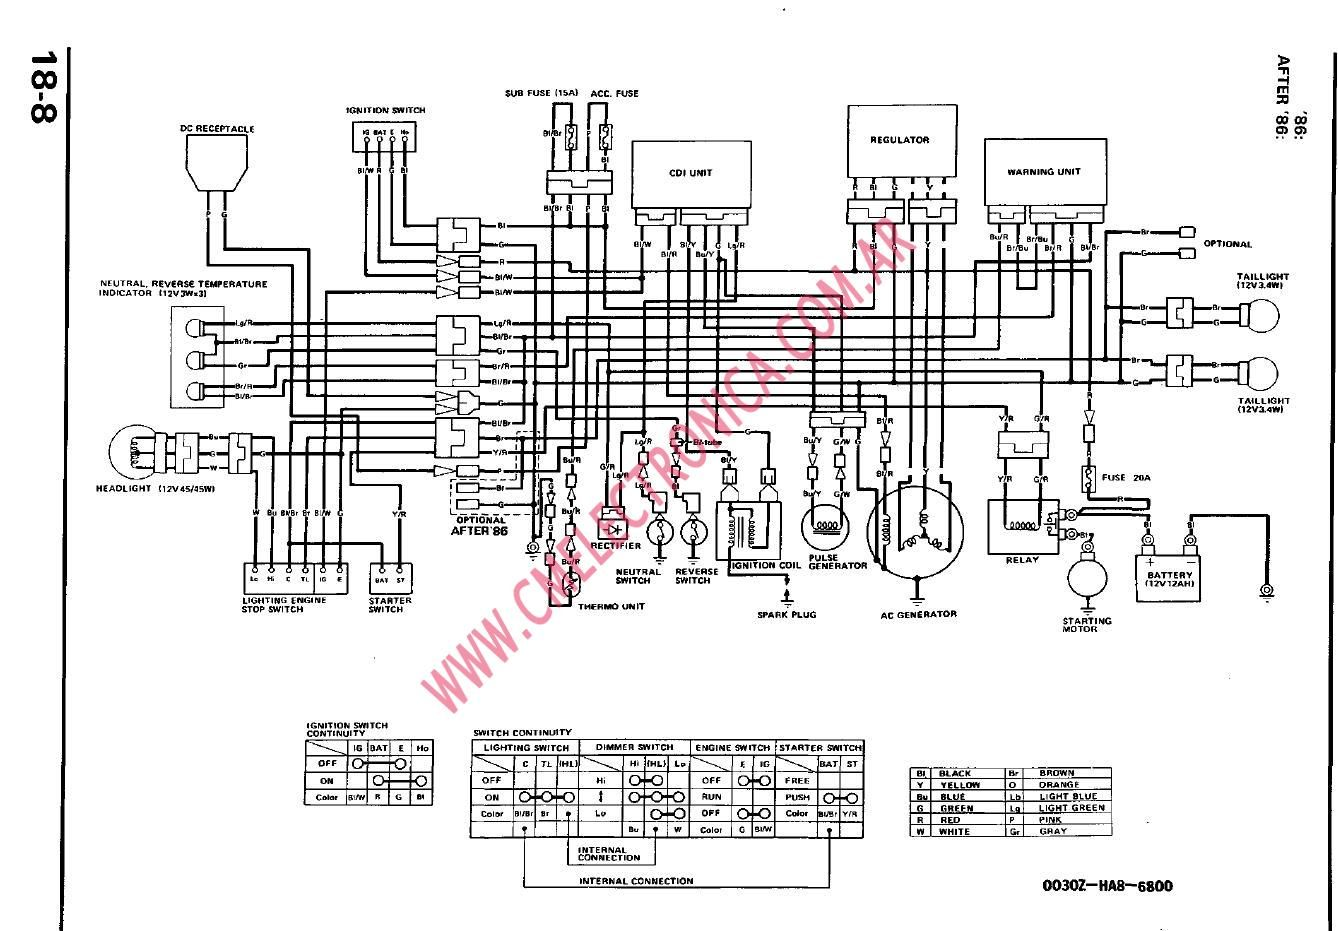 DIAGRAM] 1985 Honda Trx 250 Wiring Diagram FULL Version HD Quality Wiring  Diagram - GENANOENGINES.PERSEPHONEIAME.FRDiagram Database